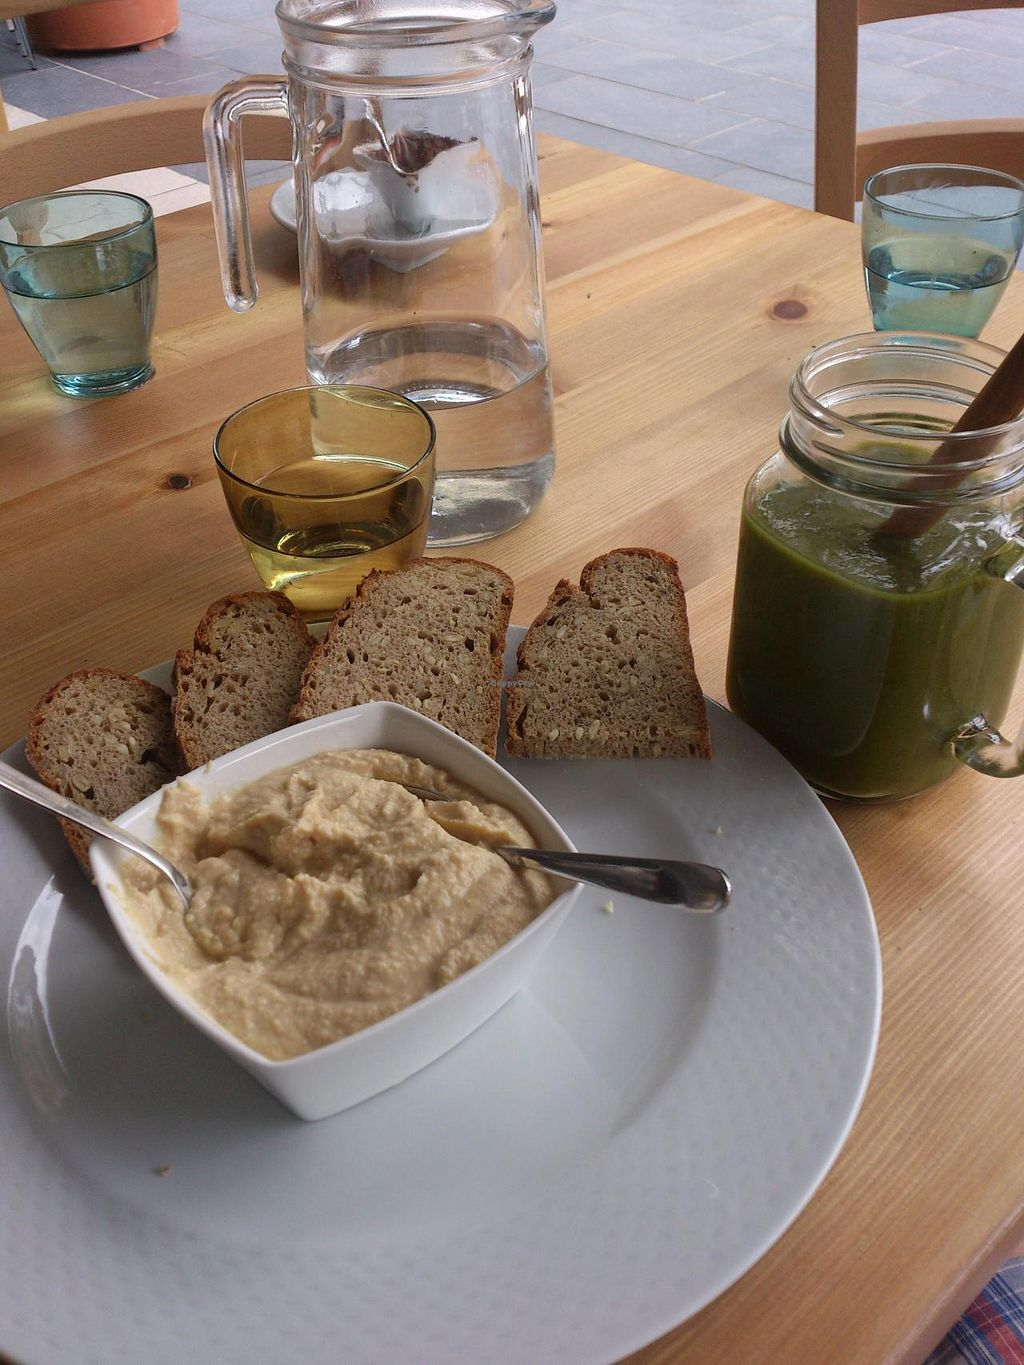 "Photo of Veganima  by <a href=""/members/profile/Tank242"">Tank242</a> <br/>Green supersmoothie, hummus <br/> July 29, 2014  - <a href='/contact/abuse/image/34979/75394'>Report</a>"